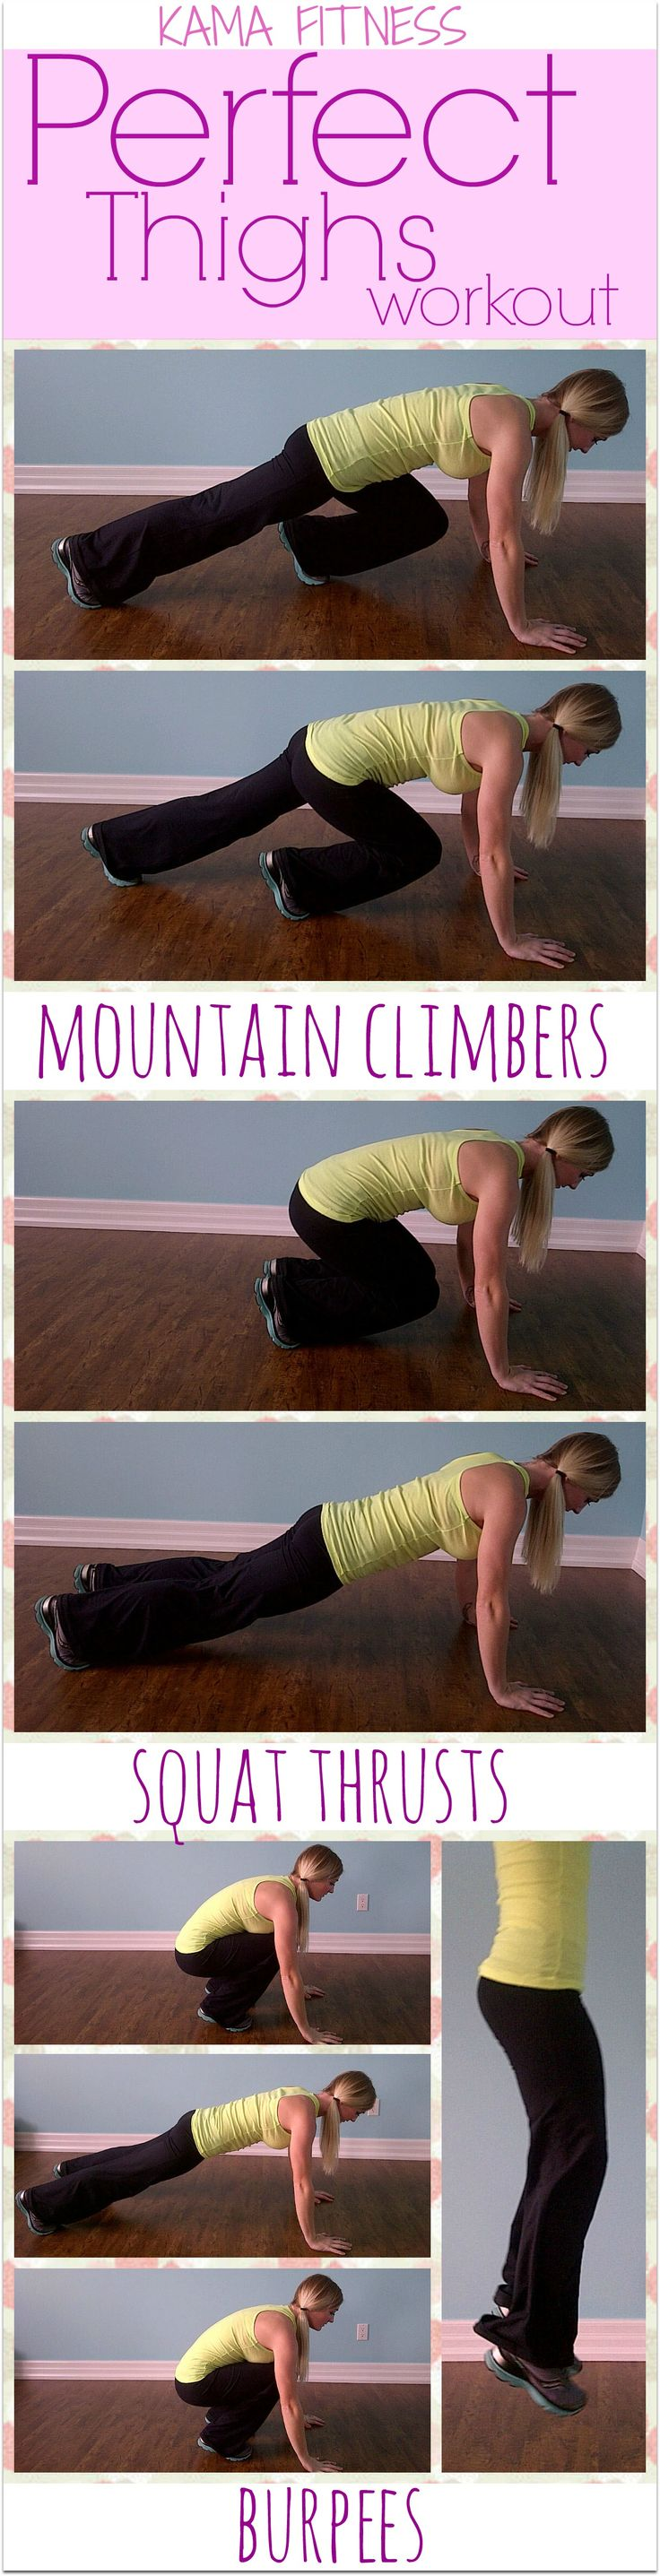 The Workout....  Complete as many rounds as possible in 15 minutes.... 15 Mountain Climbers 5 Squat Thrusts 5 Burpees